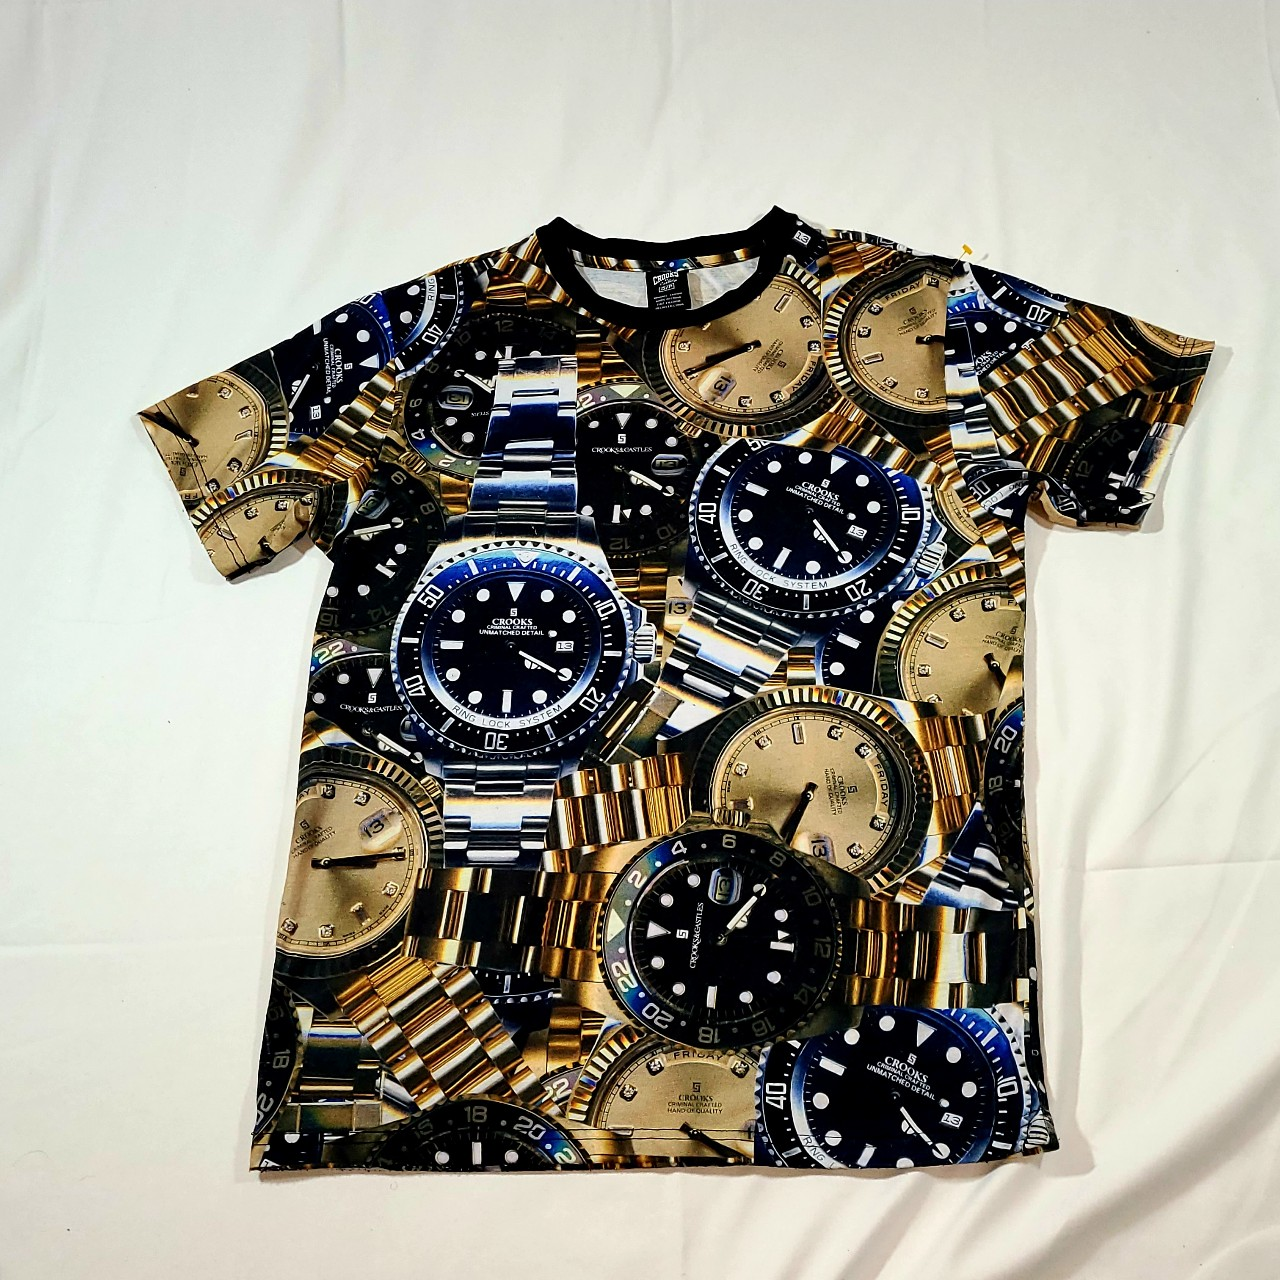 Product Image 1 - Crook & castles watch tee